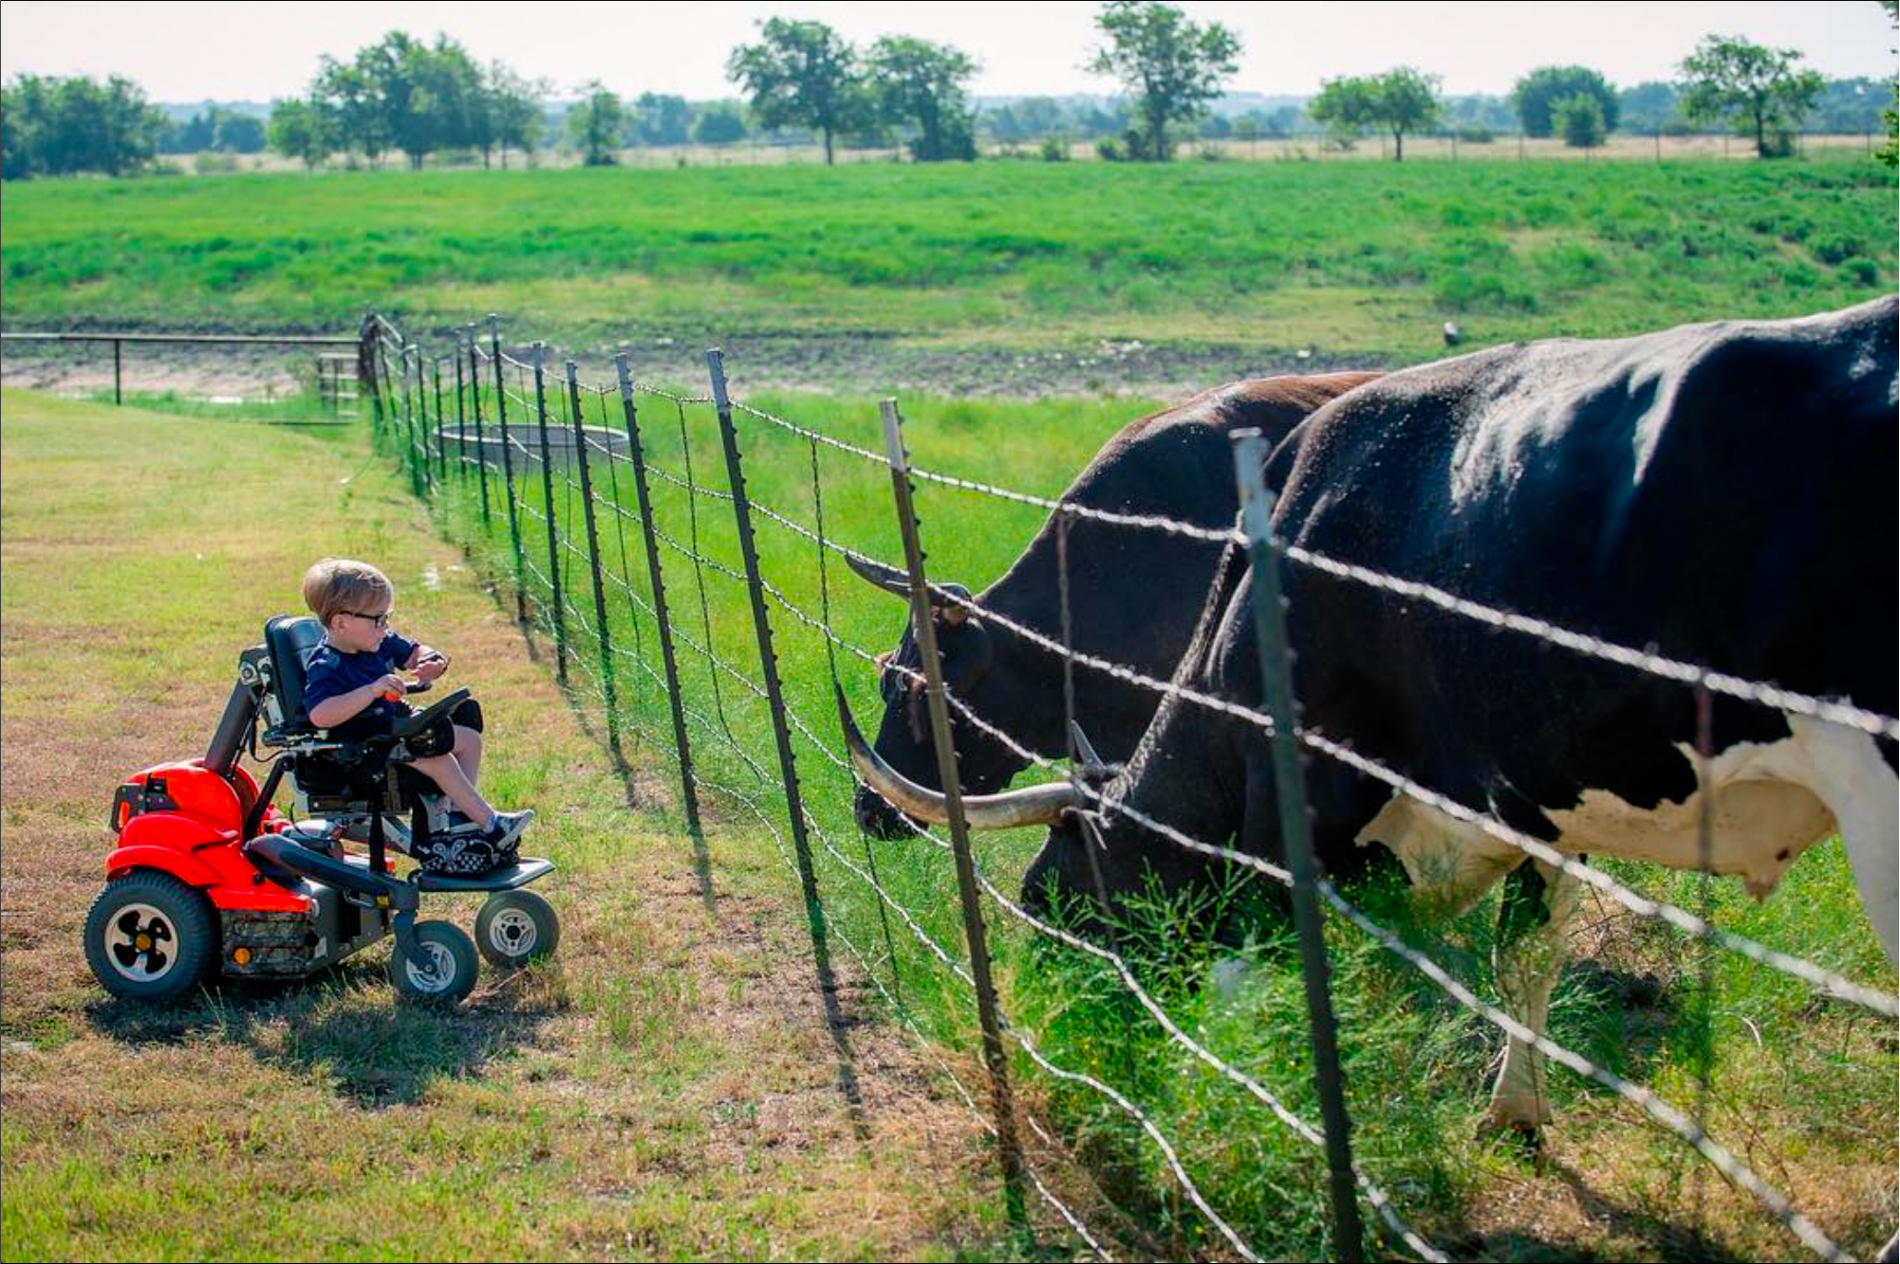 Able and the Cattle